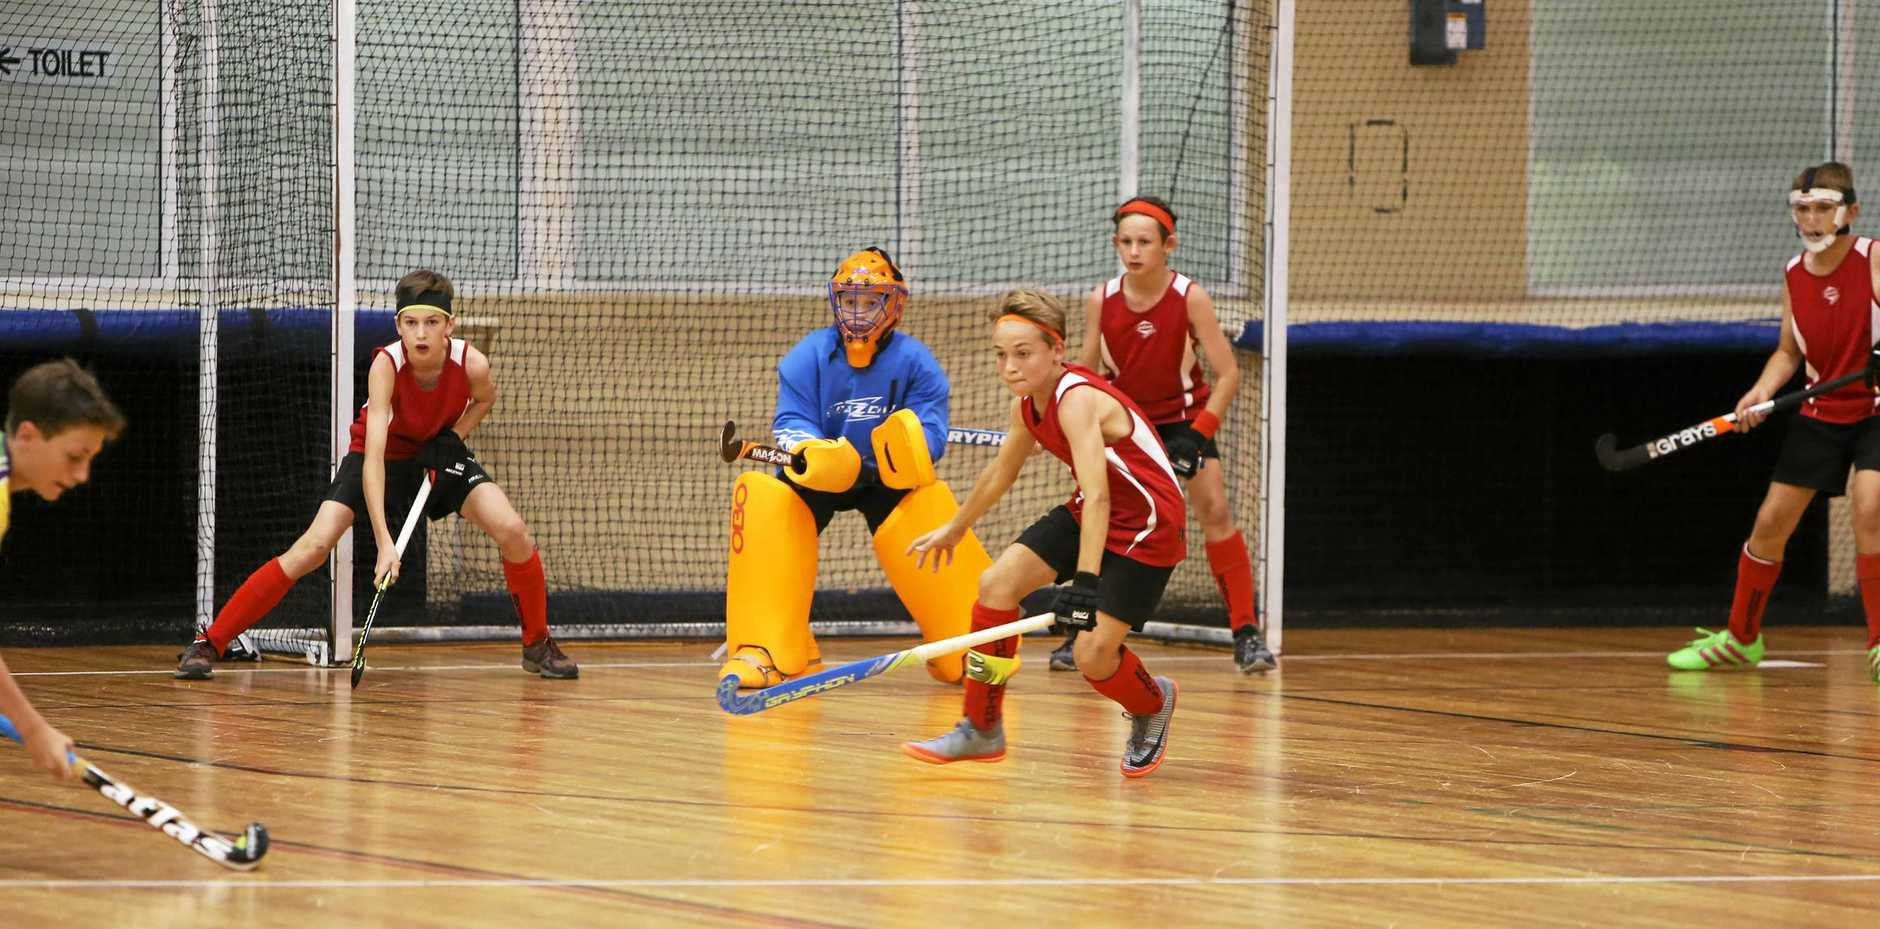 Action from the Rockhampton Red versus Brisbane Blue boys game.